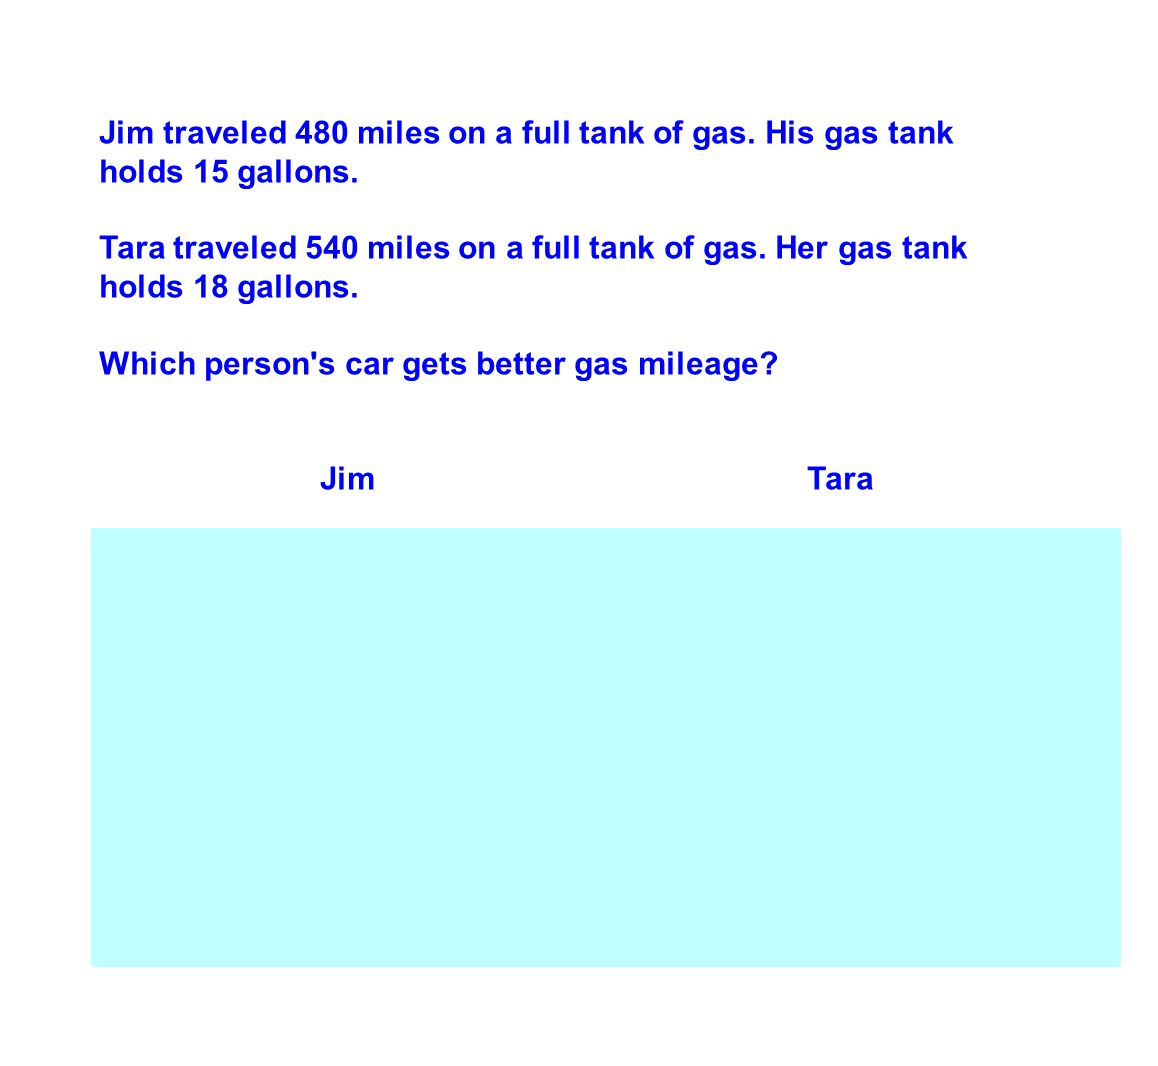 Jim traveled 480 miles on a full tank of gas